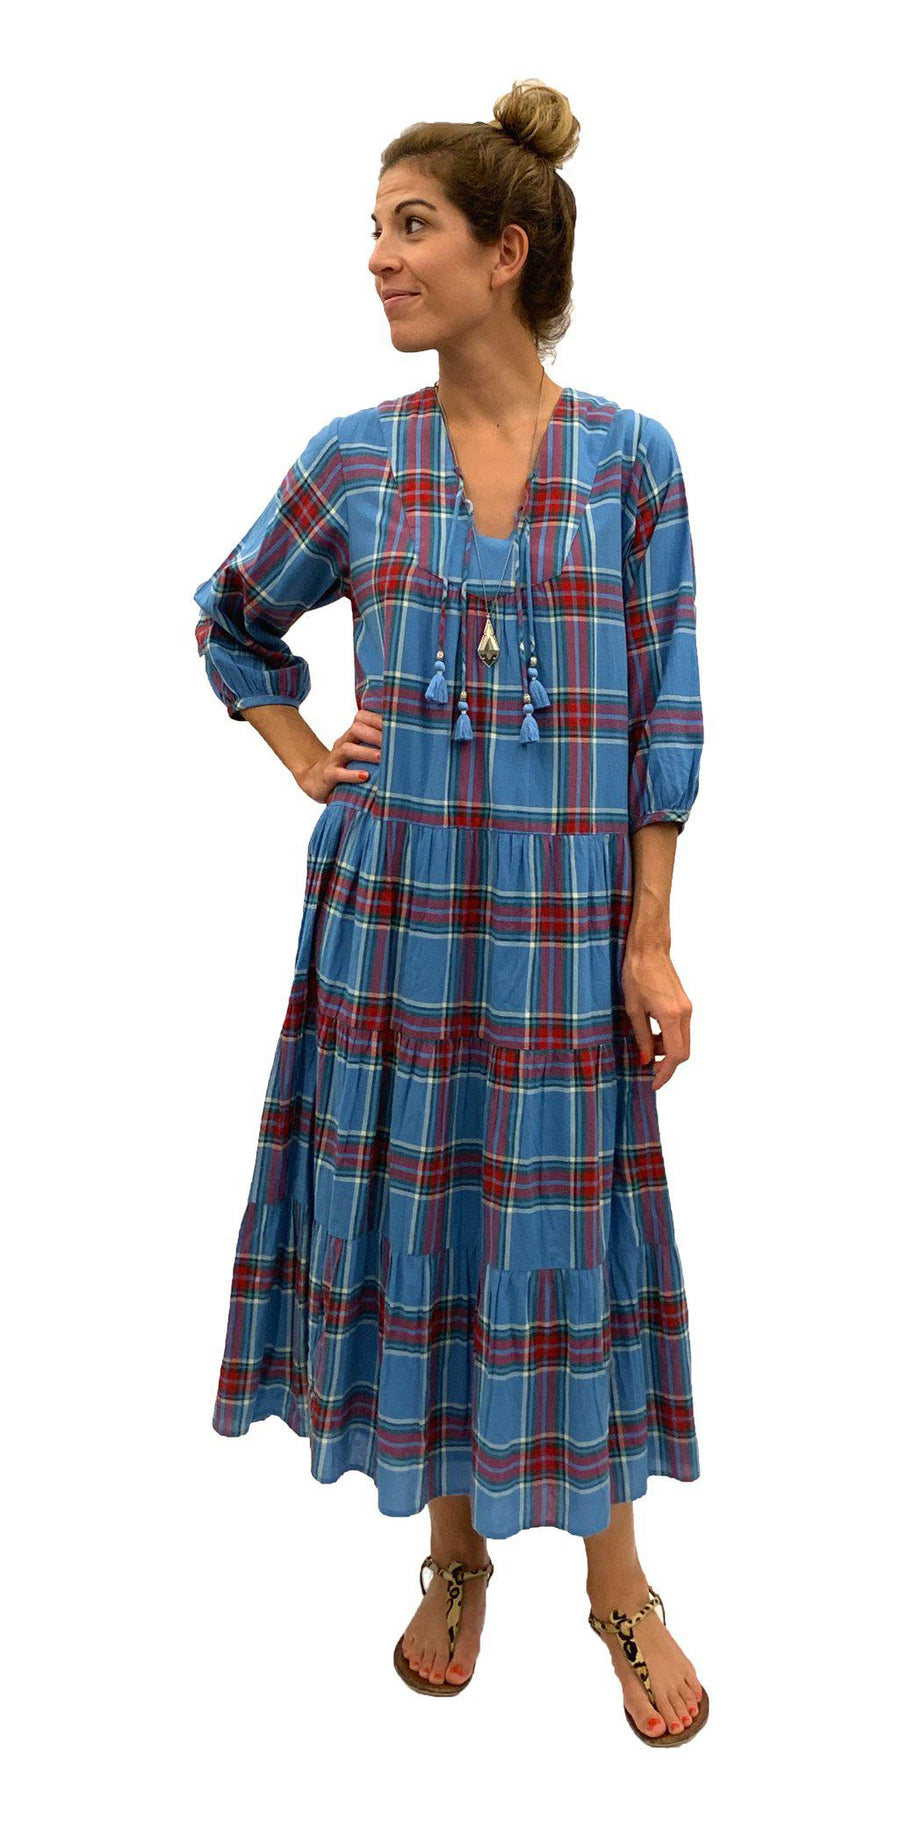 Pink Chicken Indira Dress XS riviera tartan - 19fpcw112a